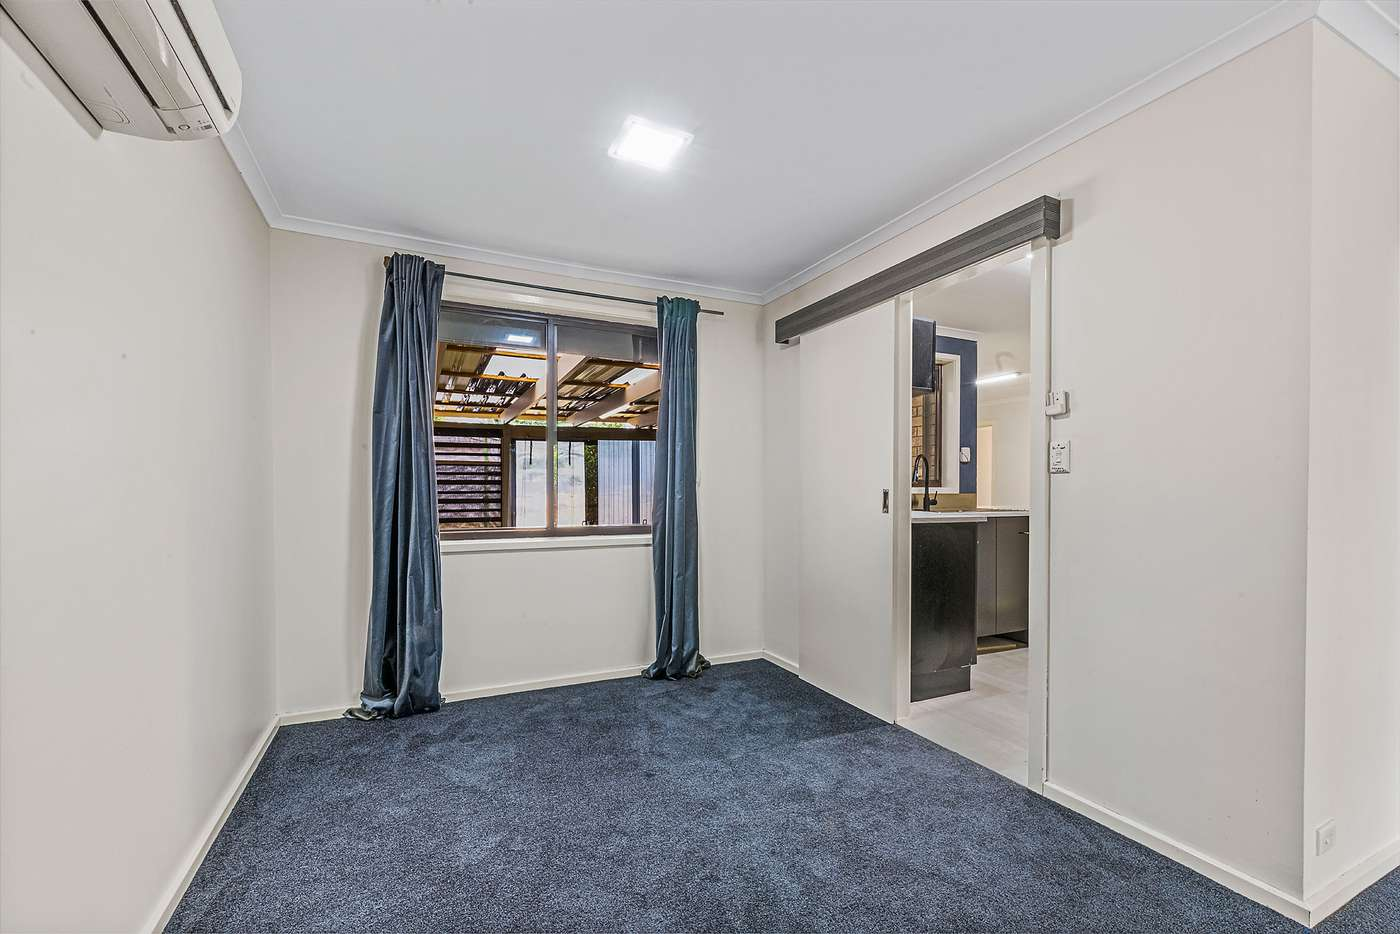 Fifth view of Homely house listing, 6 Timothy Road, Morphett Vale SA 5162